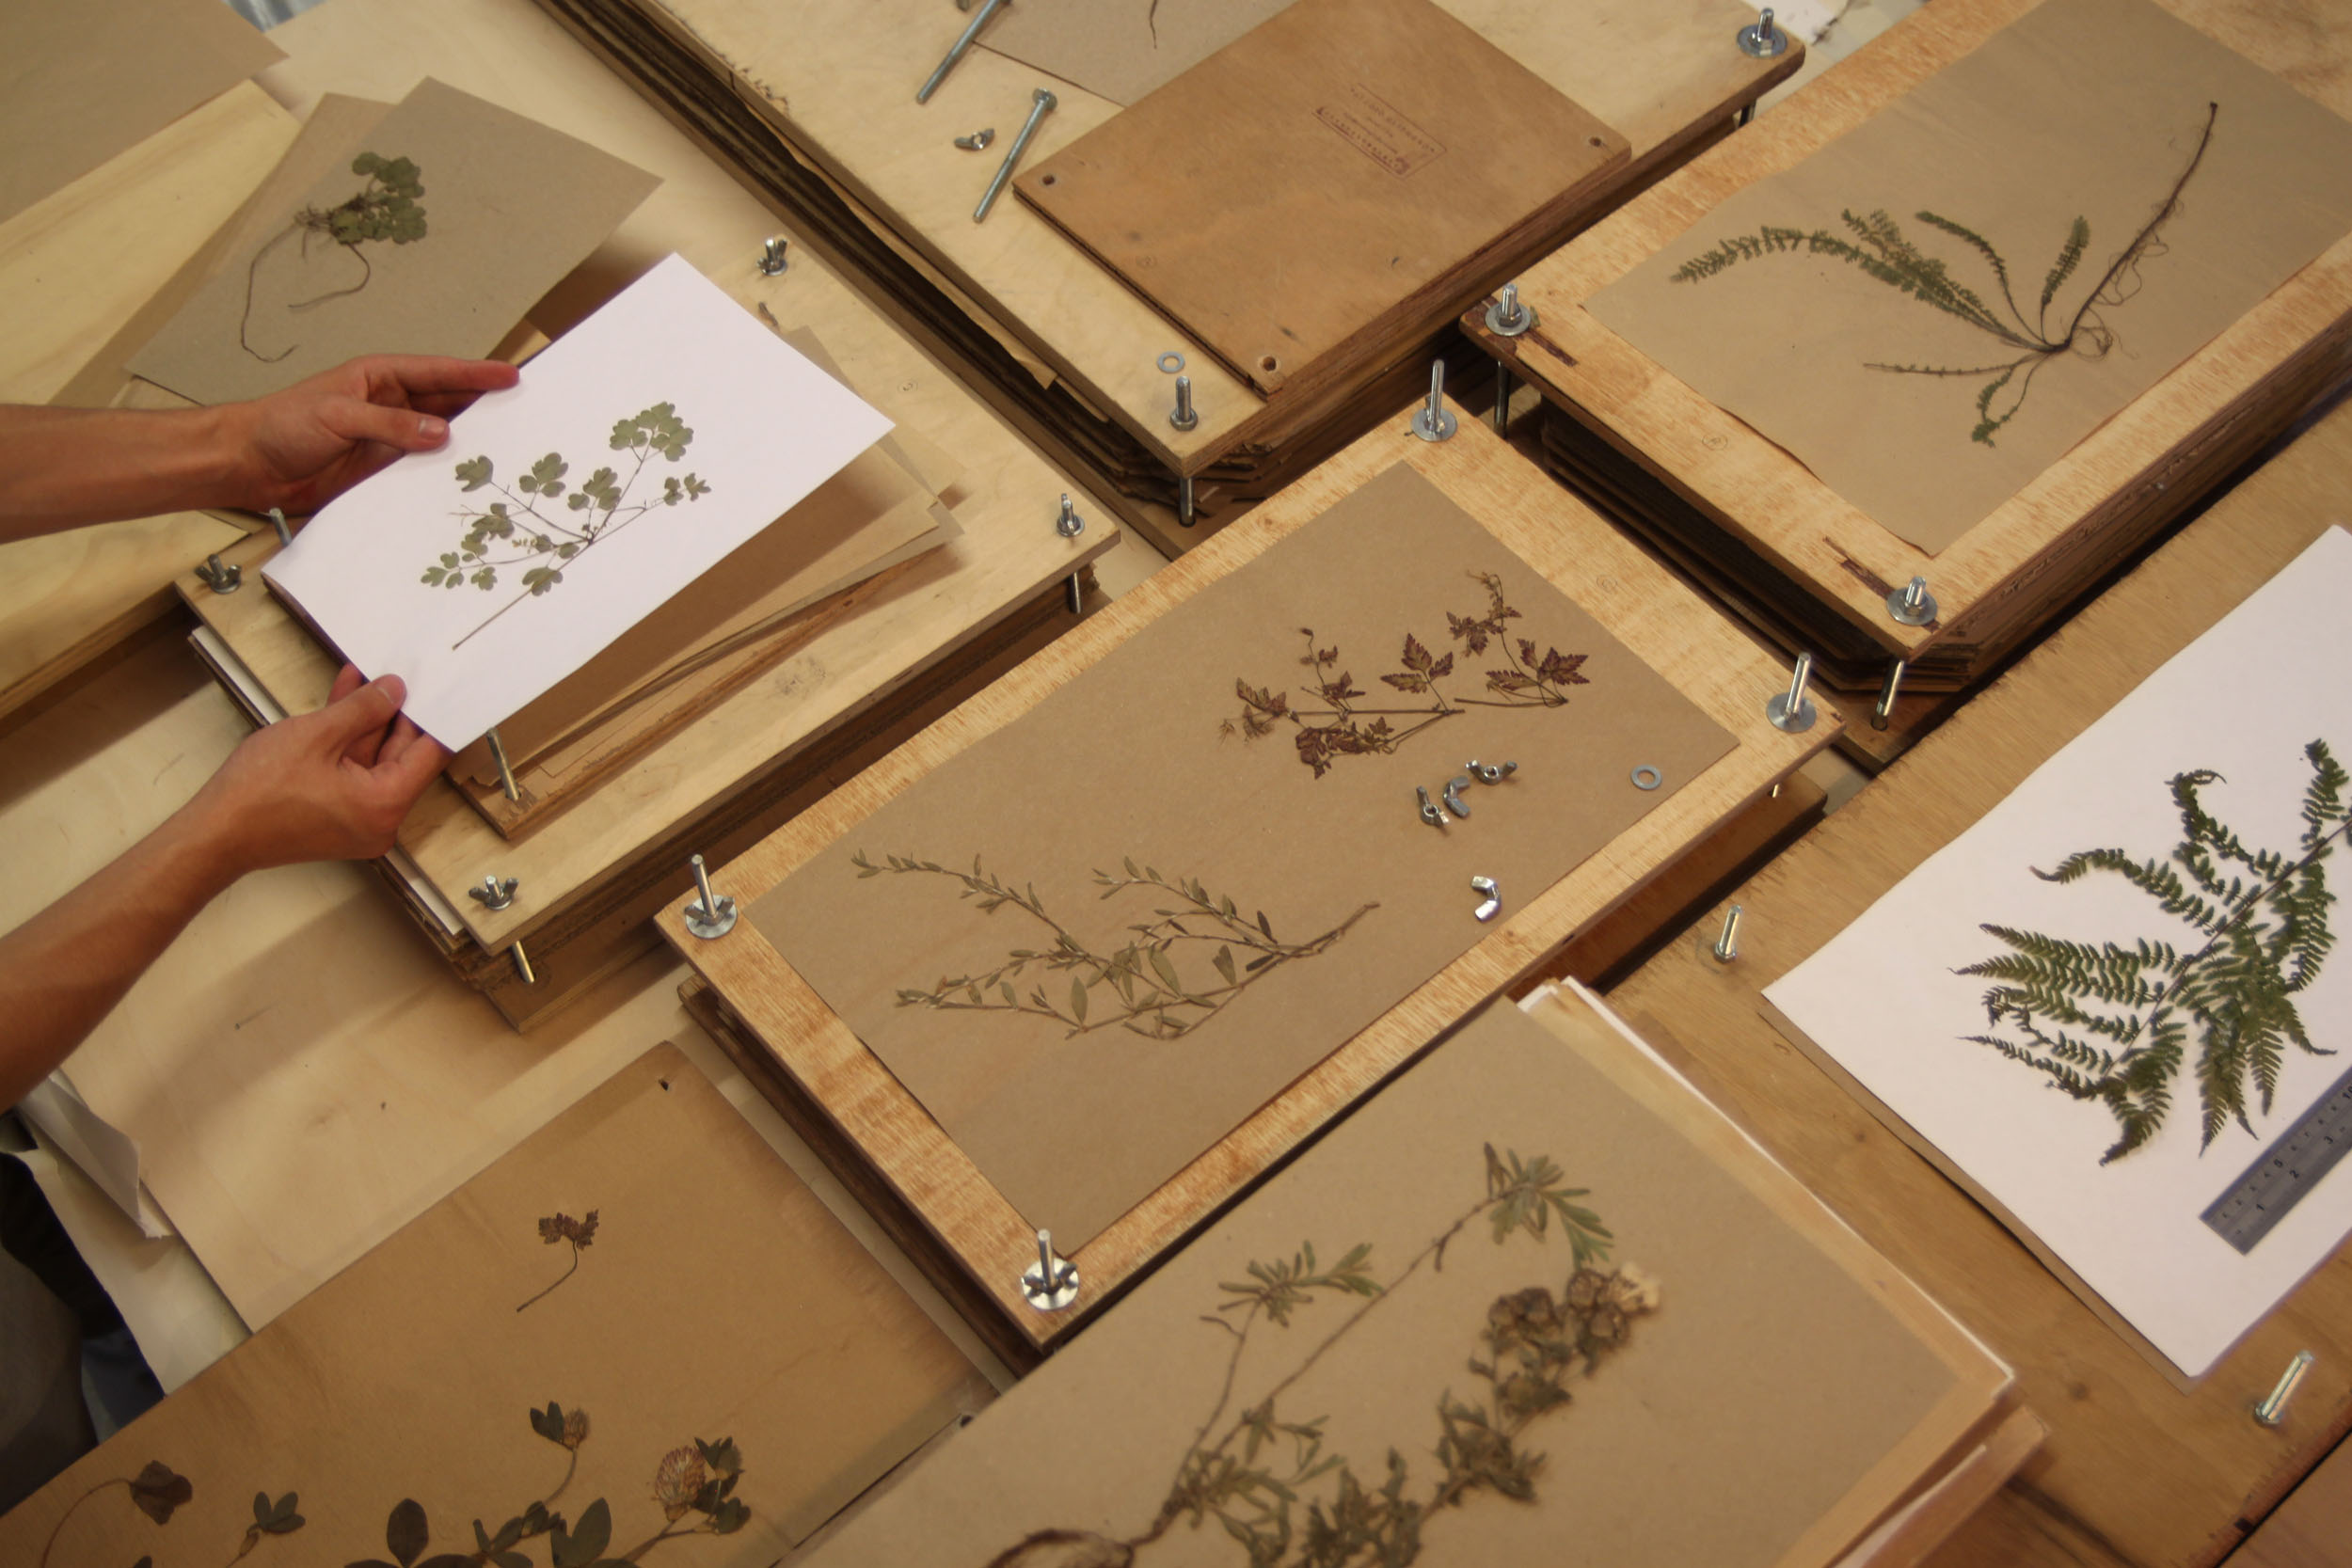 An overview of open flower presses showing different foraged specimen